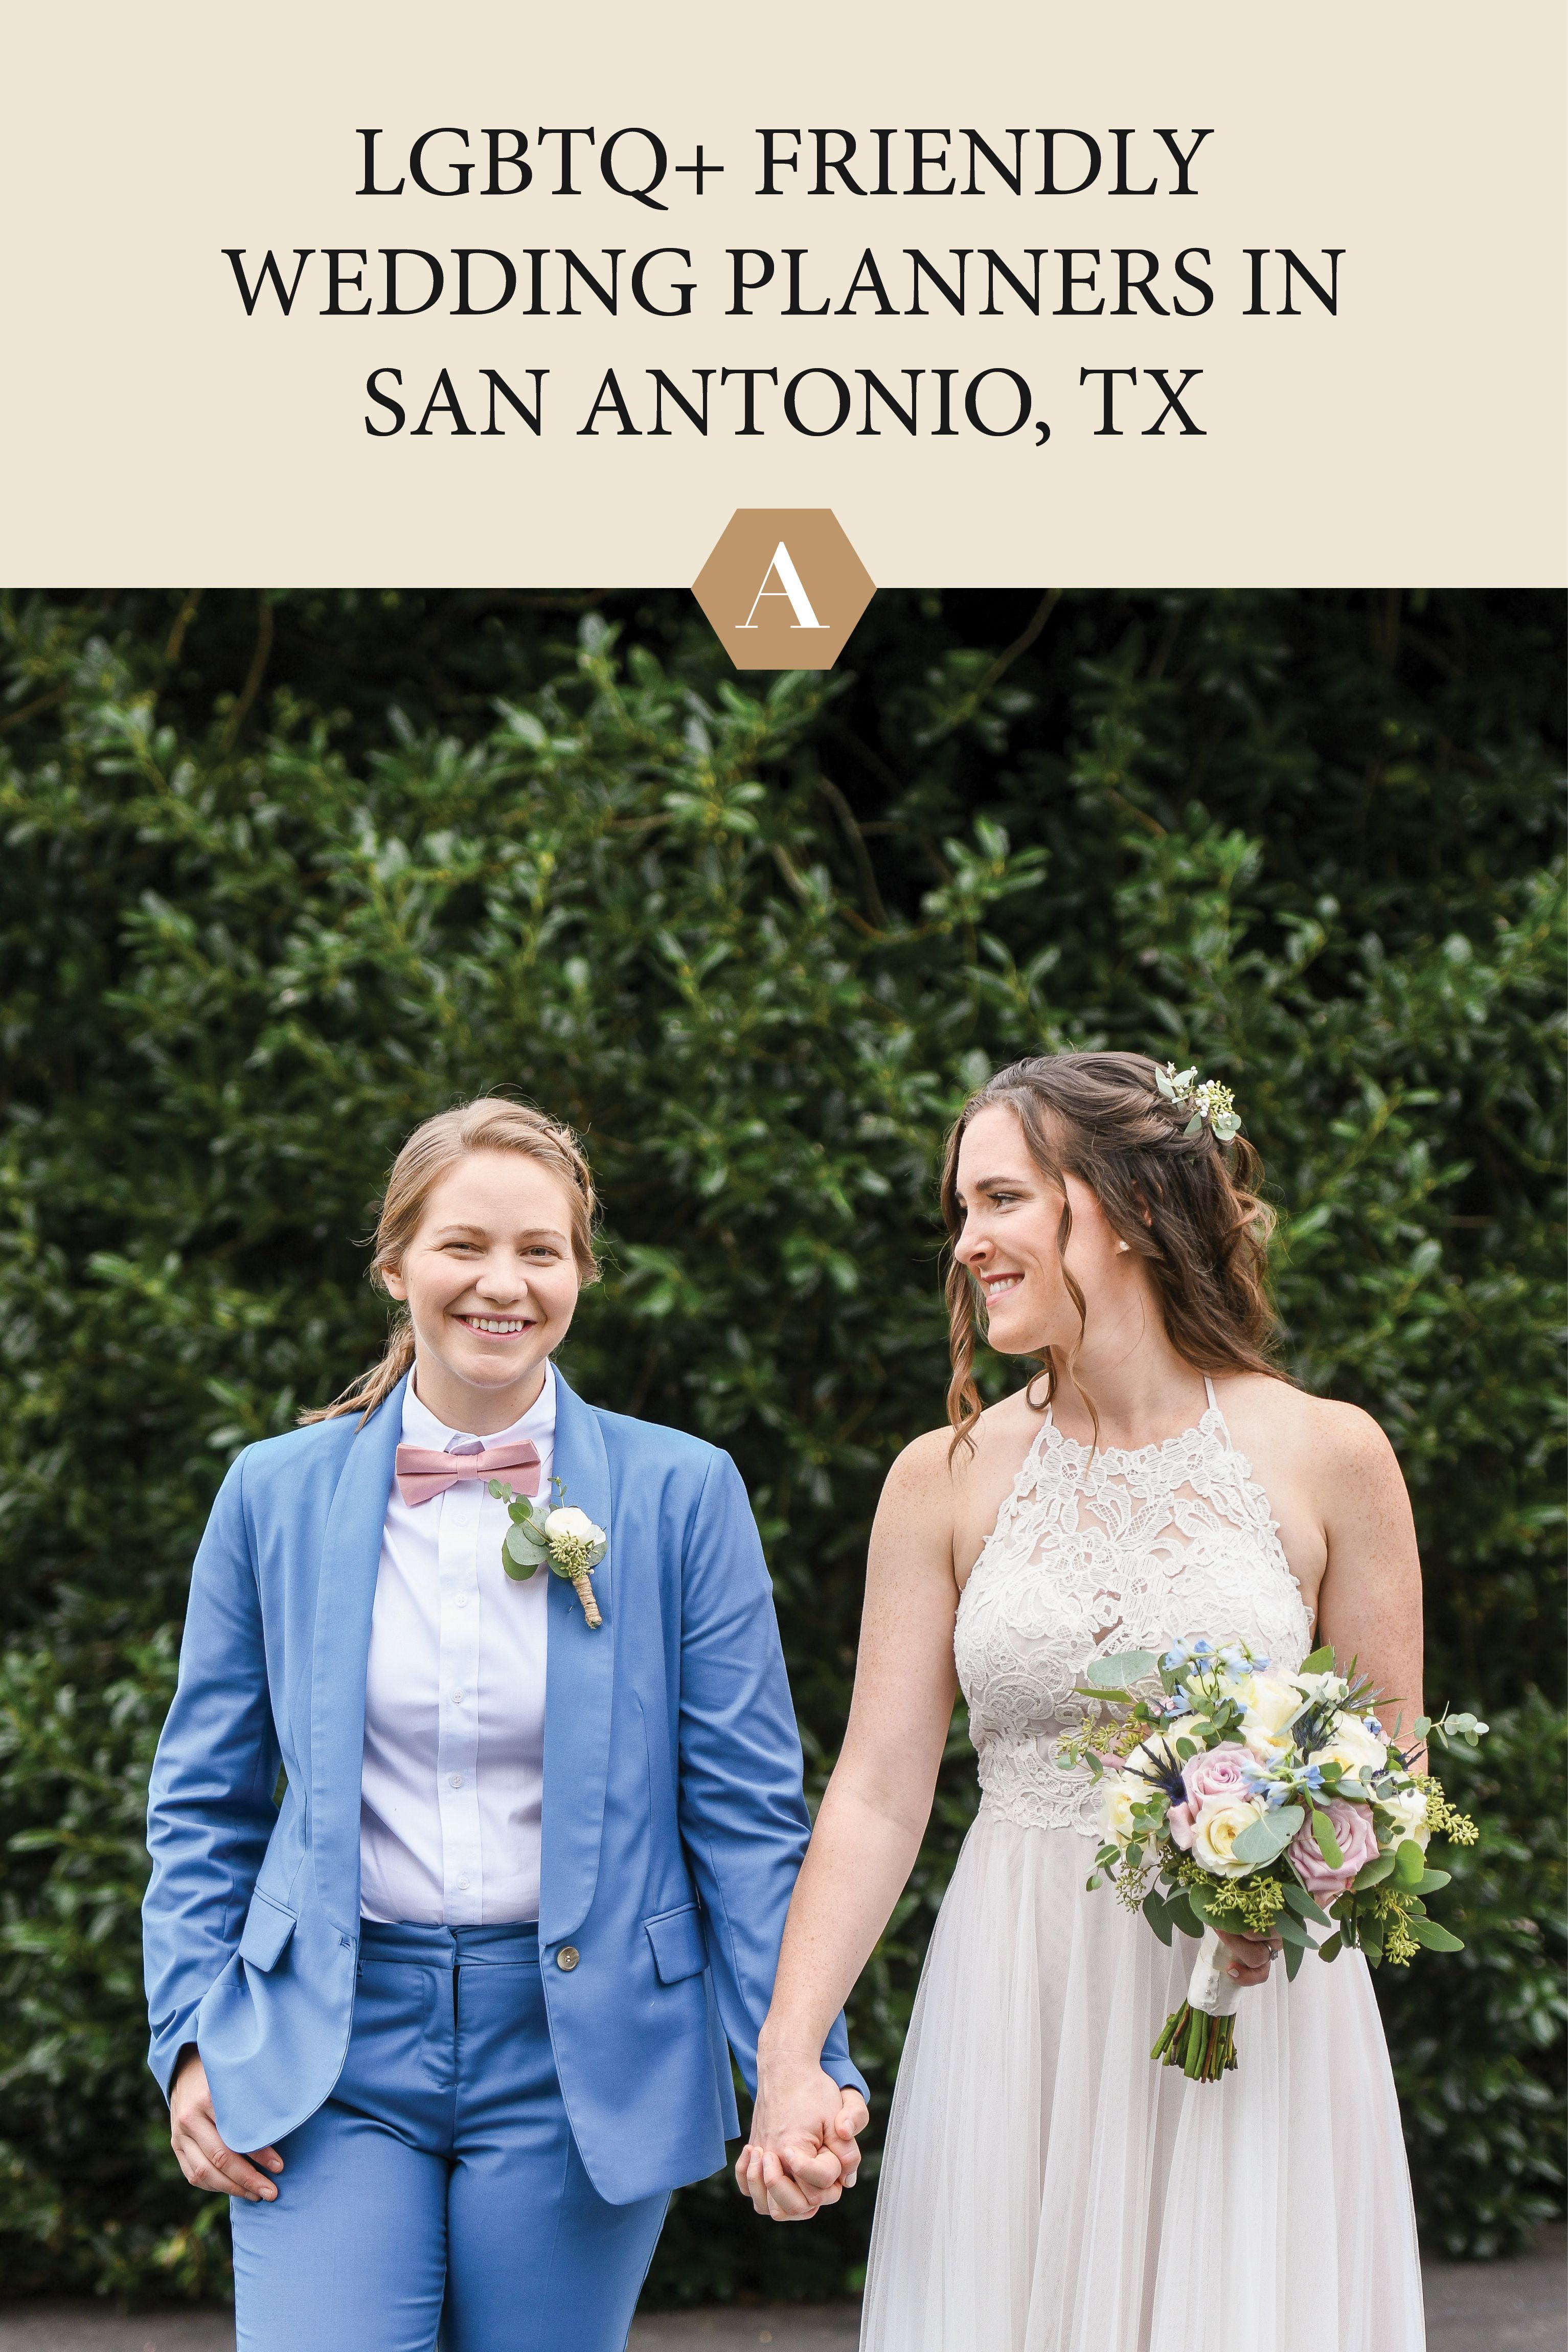 Lgbtq Friendly Event And Wedding Planners In San Antonio Tx In 2020 Wedding Event Planner Wedding Planner Wedding